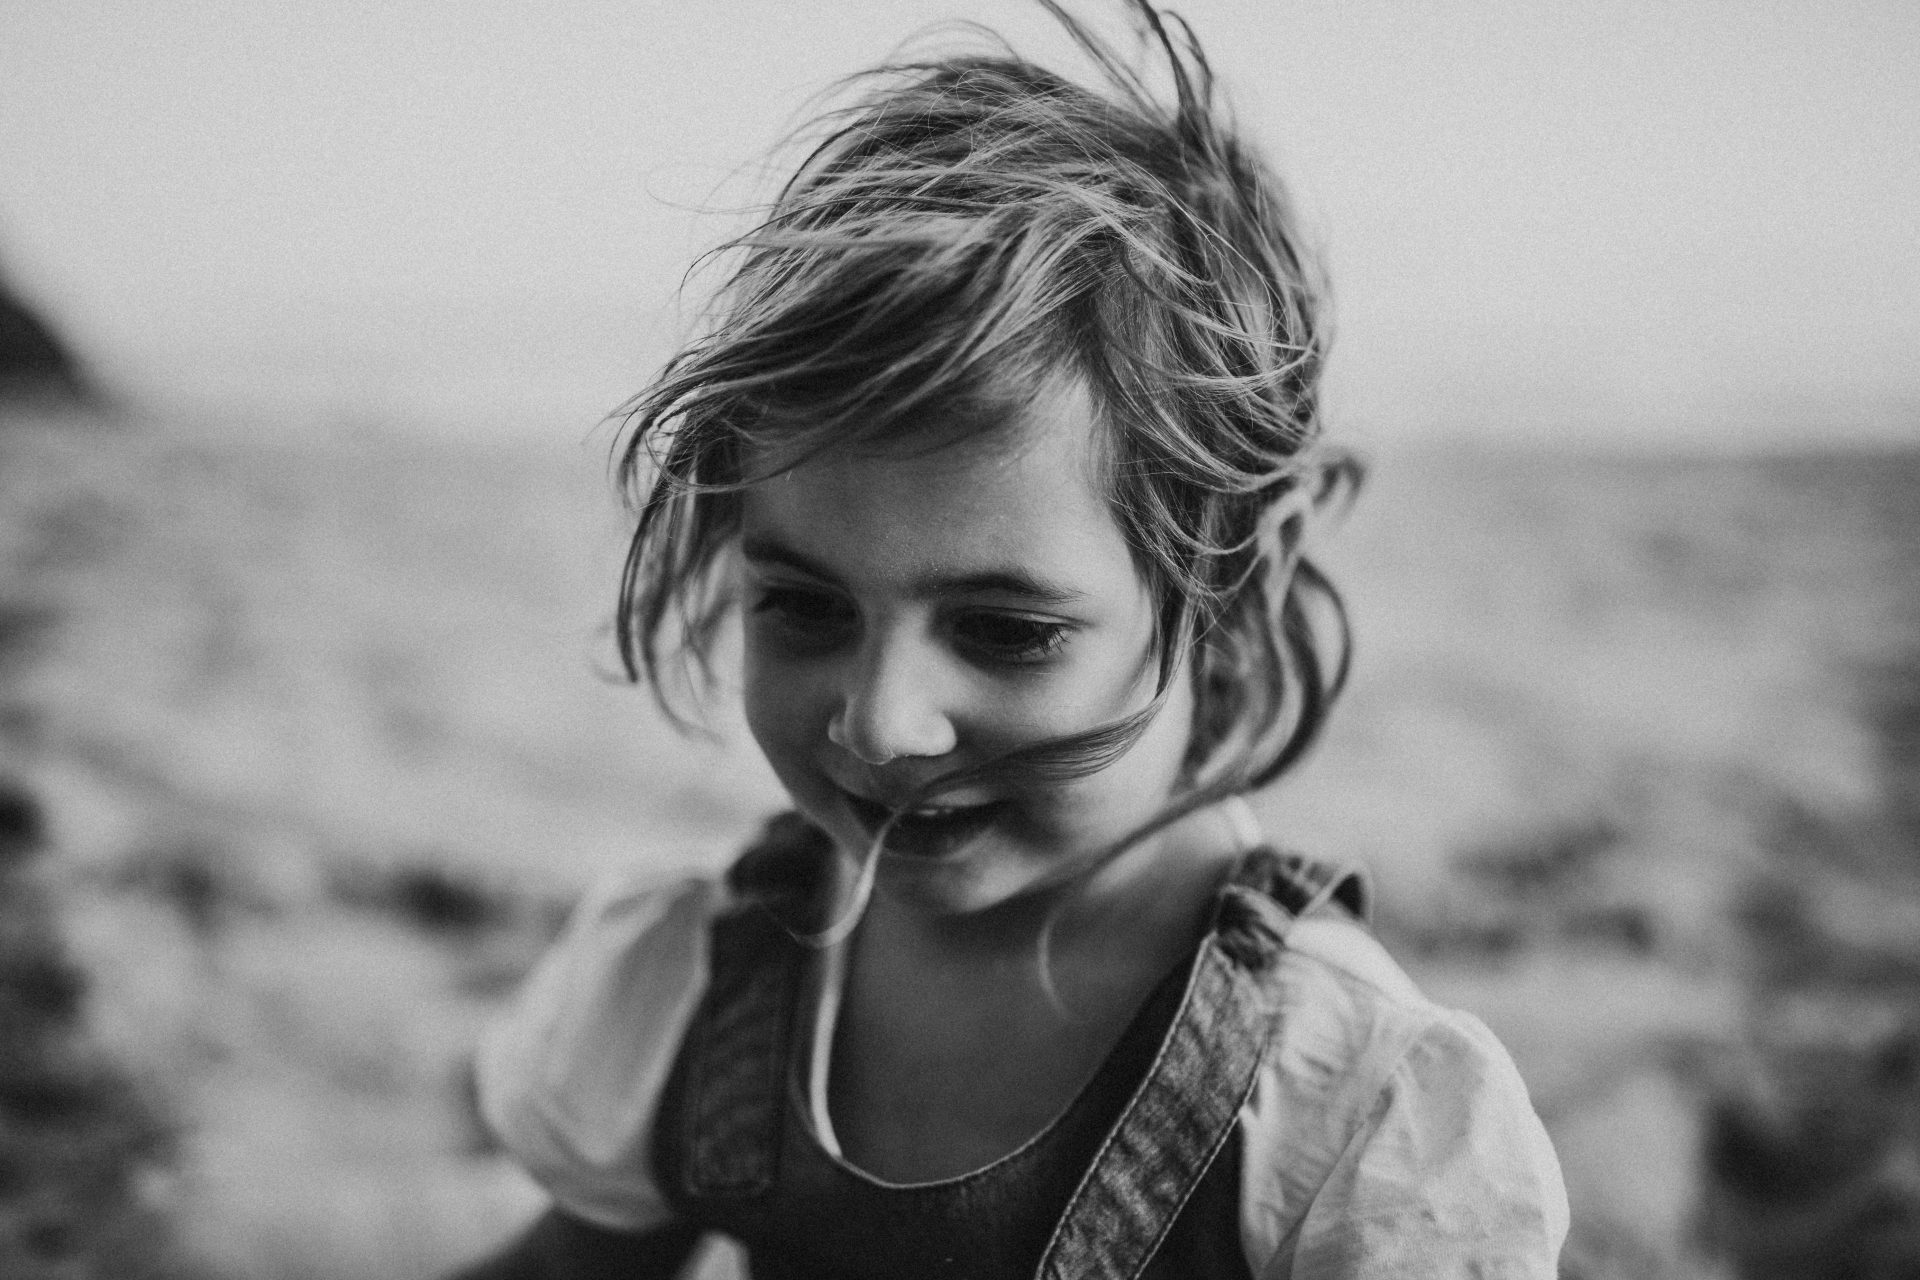 Black and white image of little girl with windswept hair